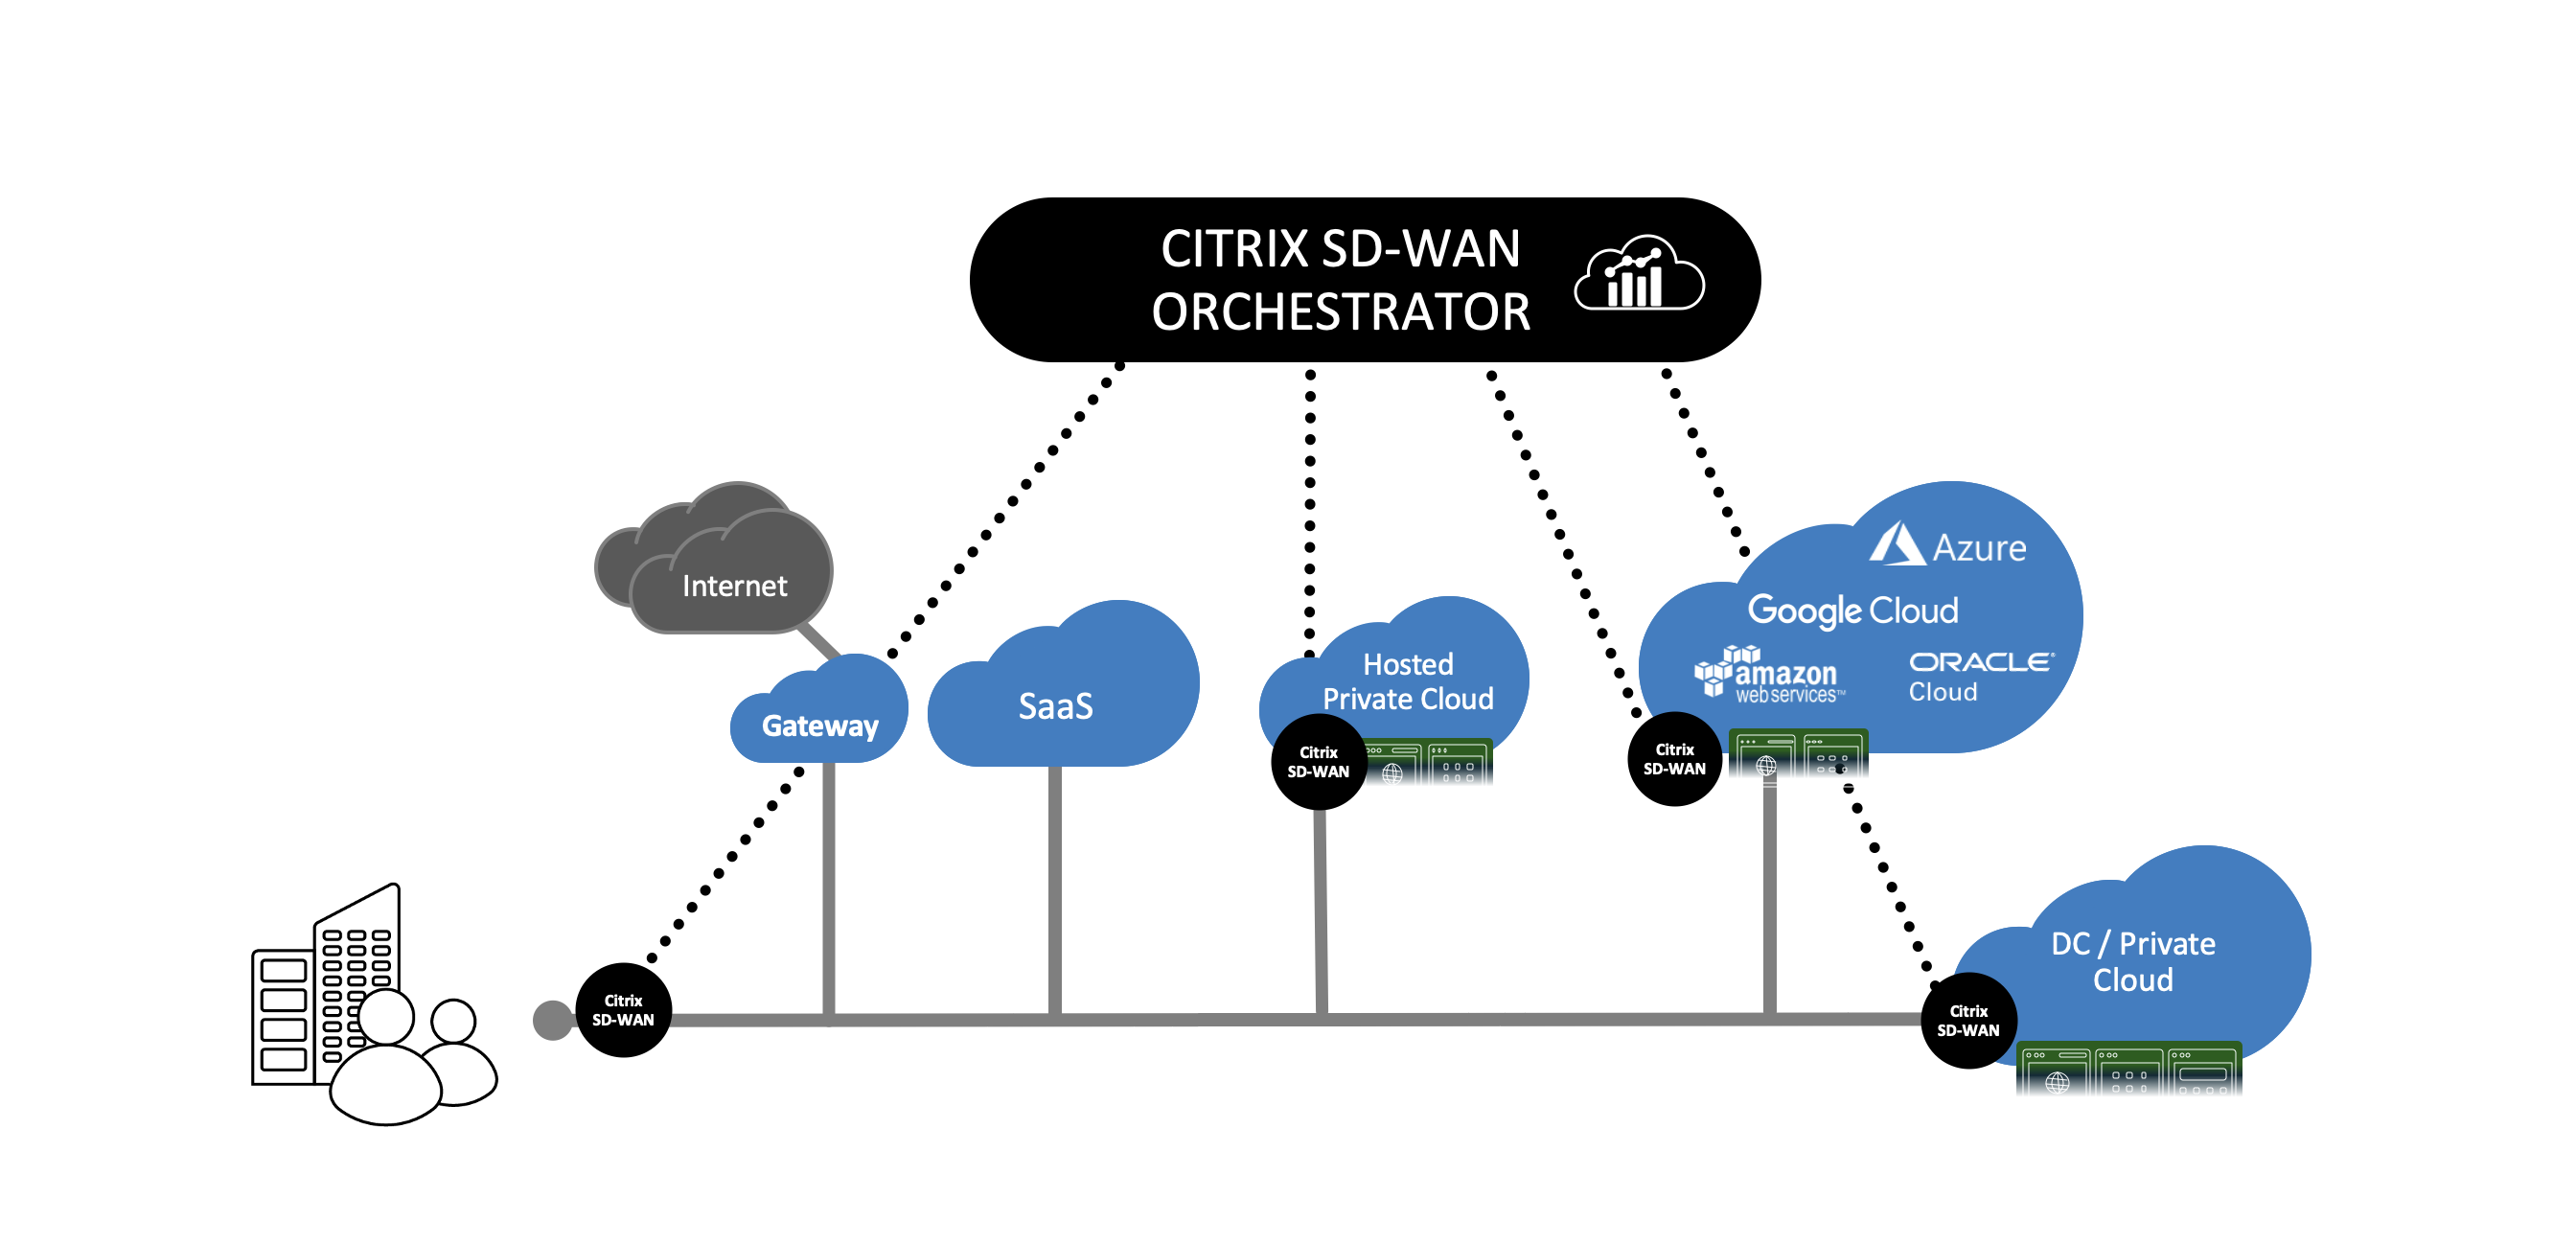 Scematic diagram of Citrix SD-WAN hybrid multi cloud deployment